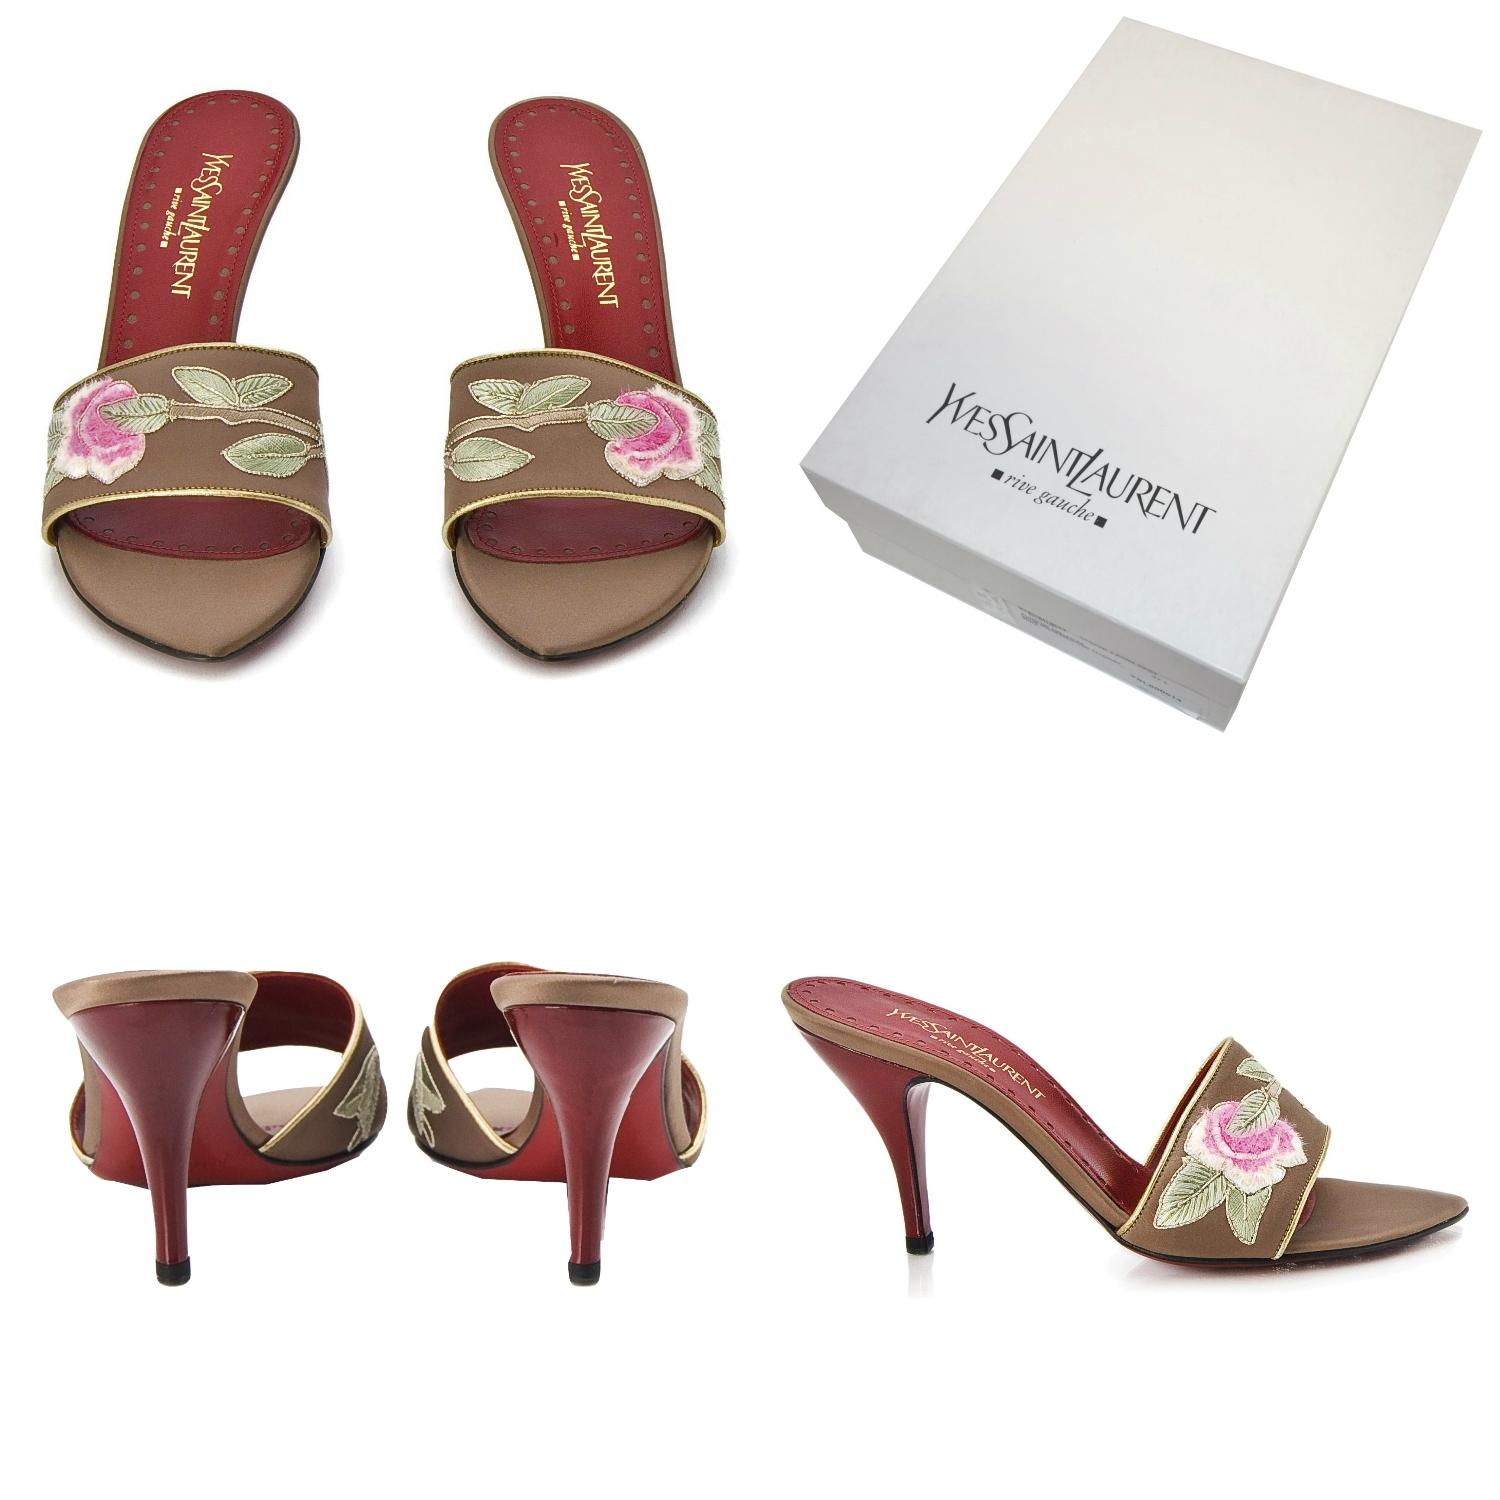 05f1a818431b Saint Laurent New Ysl Tom Ford with Era Famous Lotus Heels with Ford Box  and Dust Cover Mules Slides Size EU 37 (Approx. US 7) Regular (M